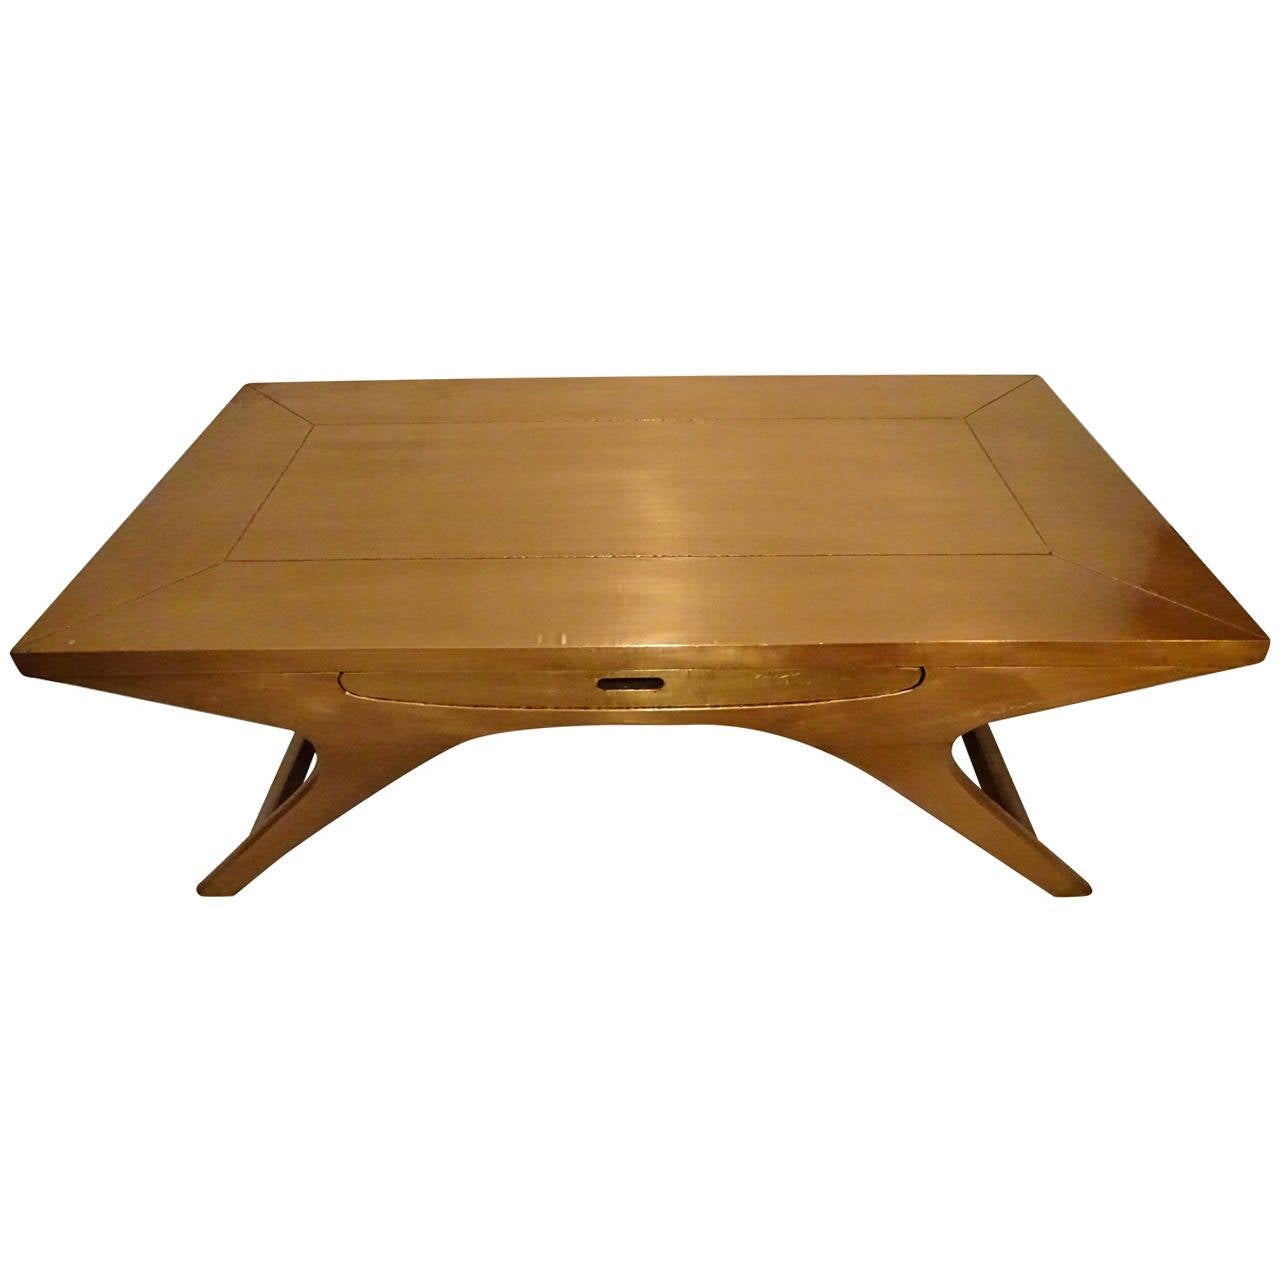 Modern copper clad coffee table at 1stdibs for Modern furniture coffee table